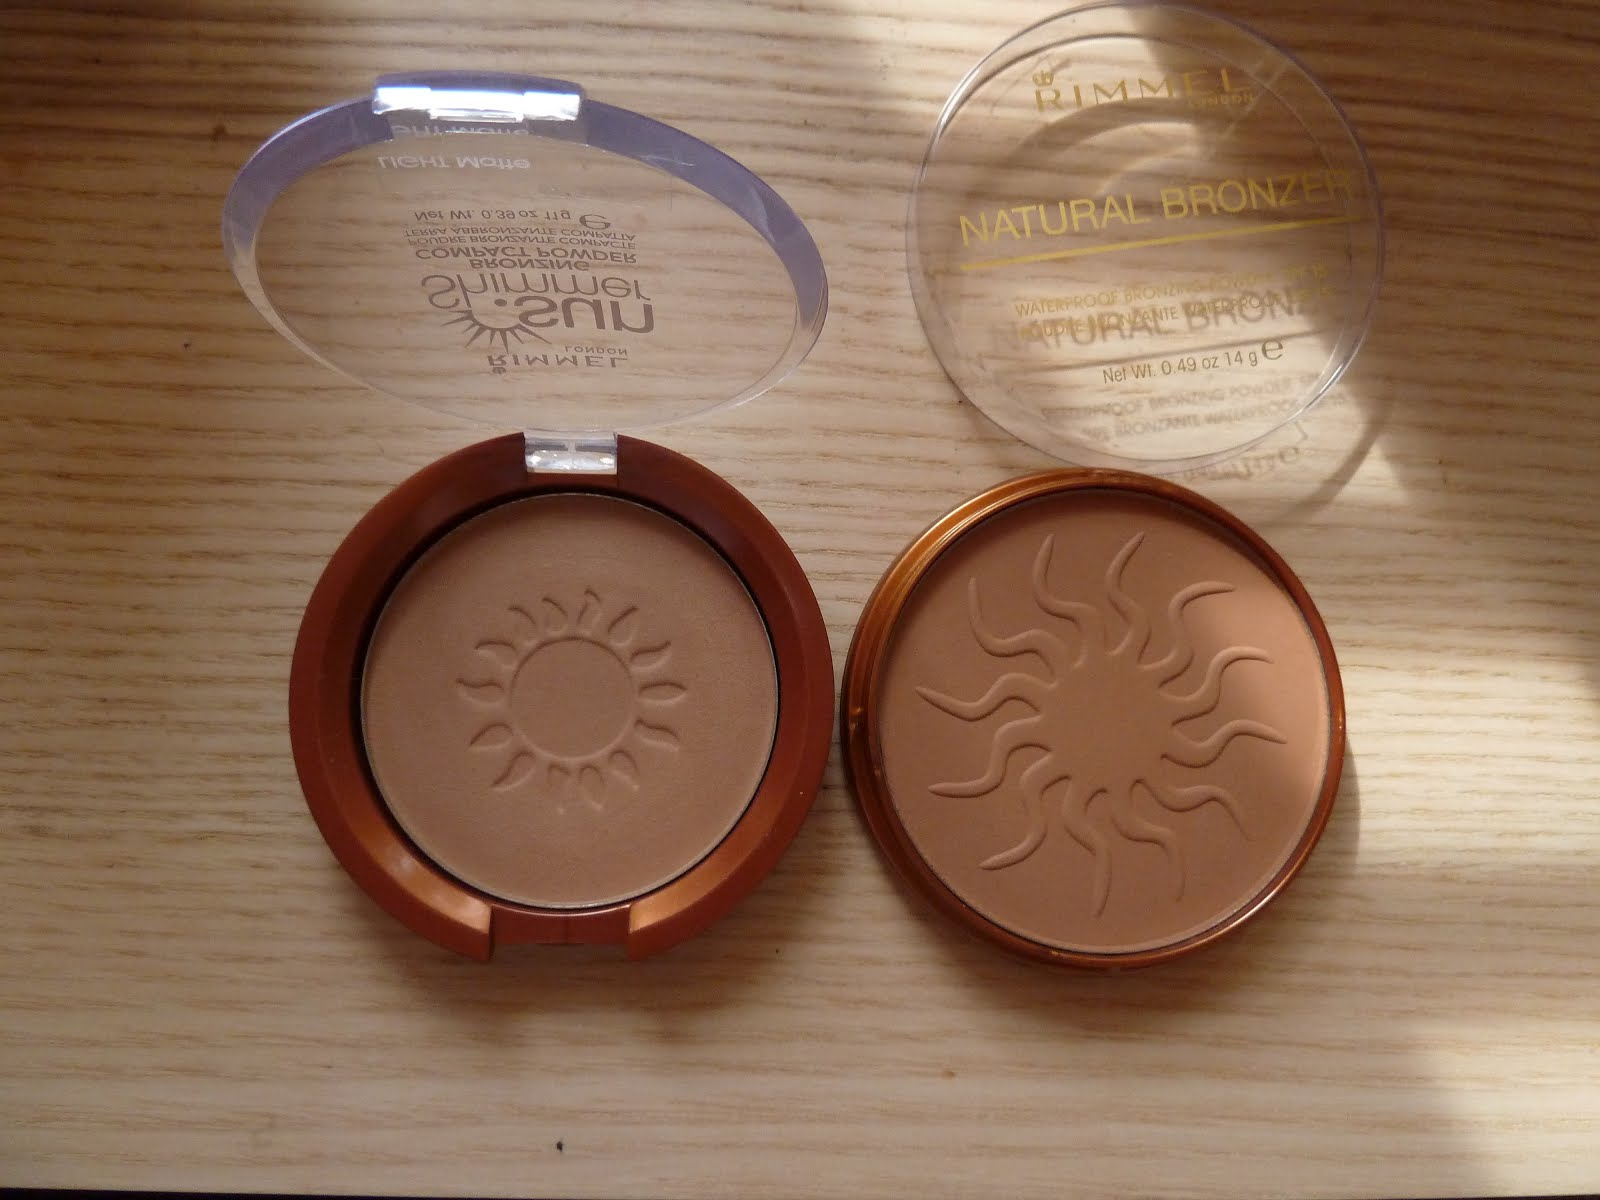 Left: Sun Shimmer, right: Natural Bronzer